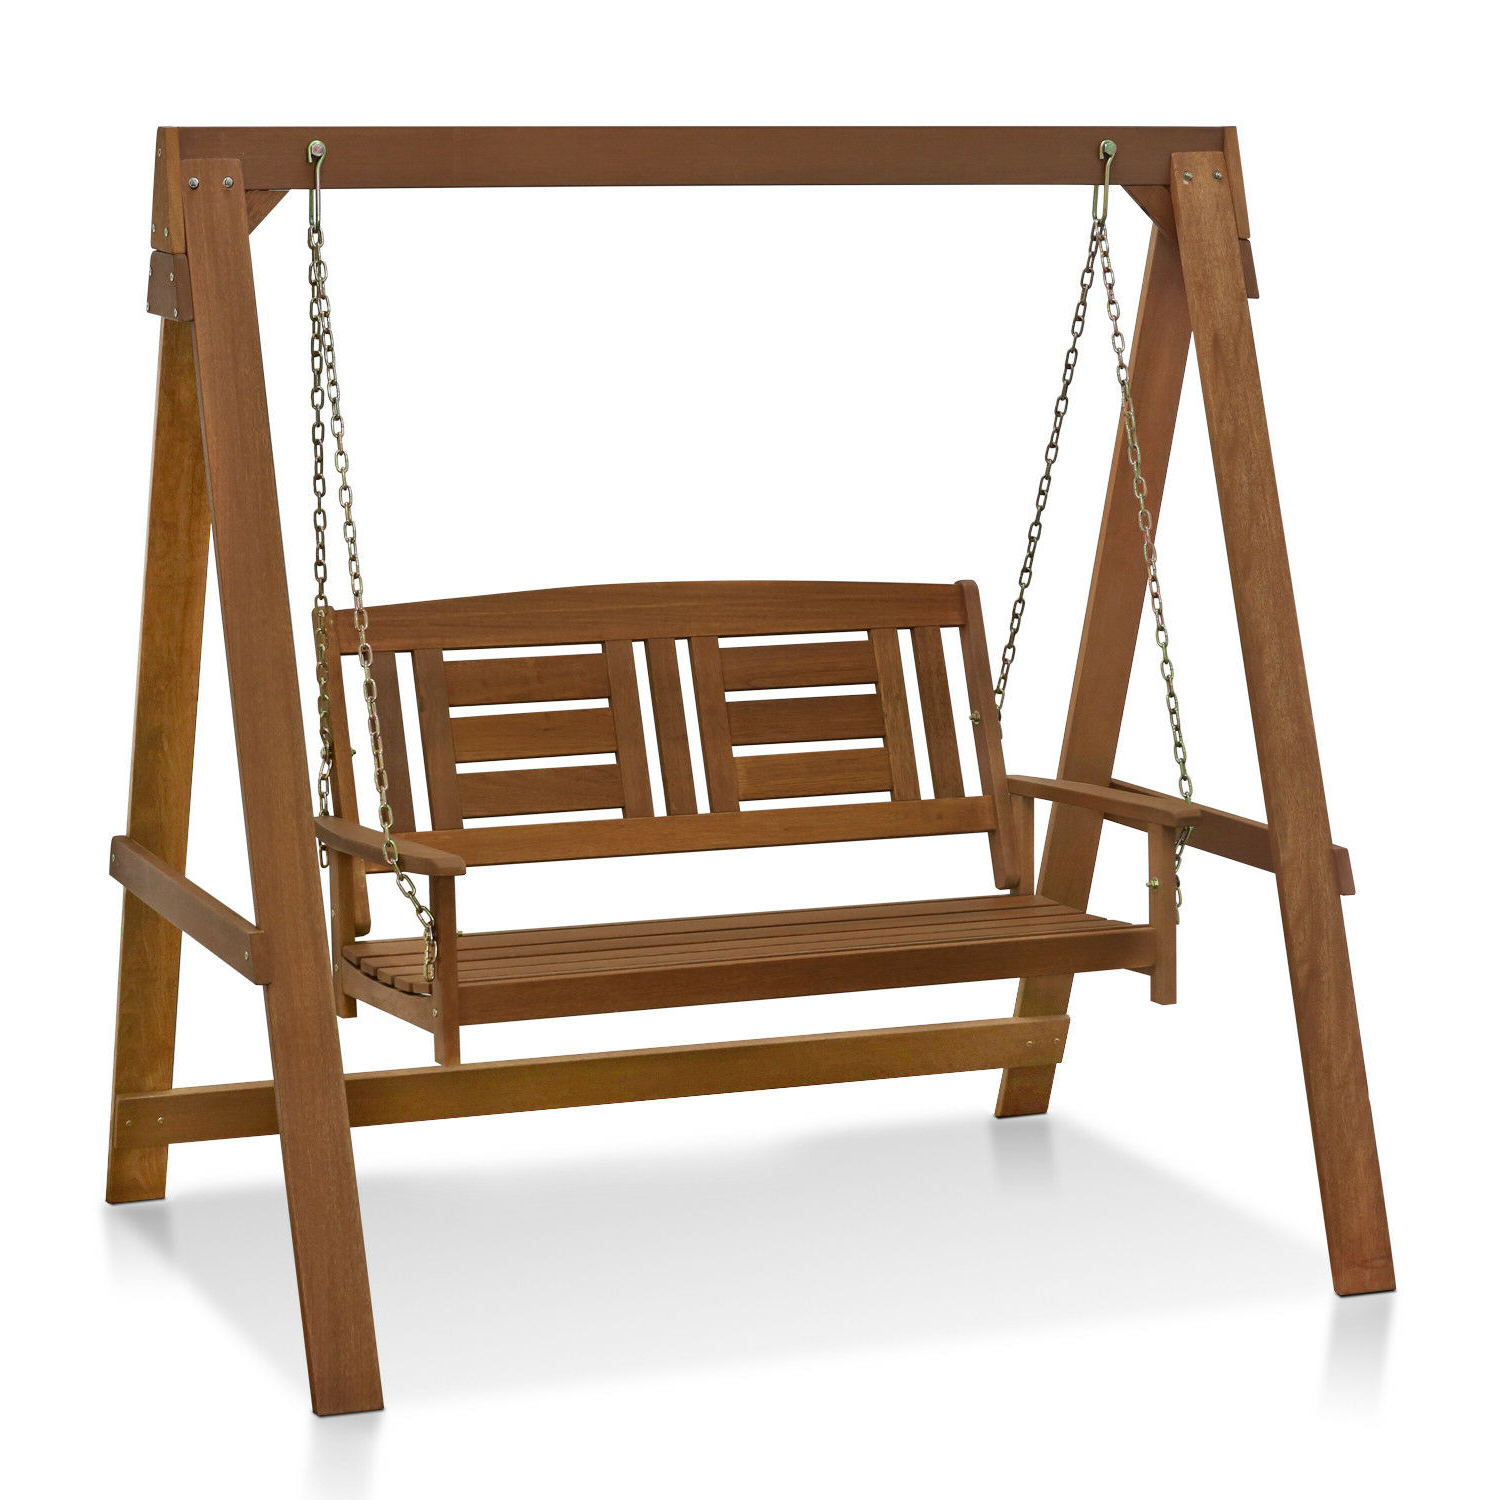 Current Furinno Tioman Hardwood Hanging Porch Swing With Stand, Brown For 2 Person Light Teak Oil Wood Outdoor Swings (View 16 of 25)